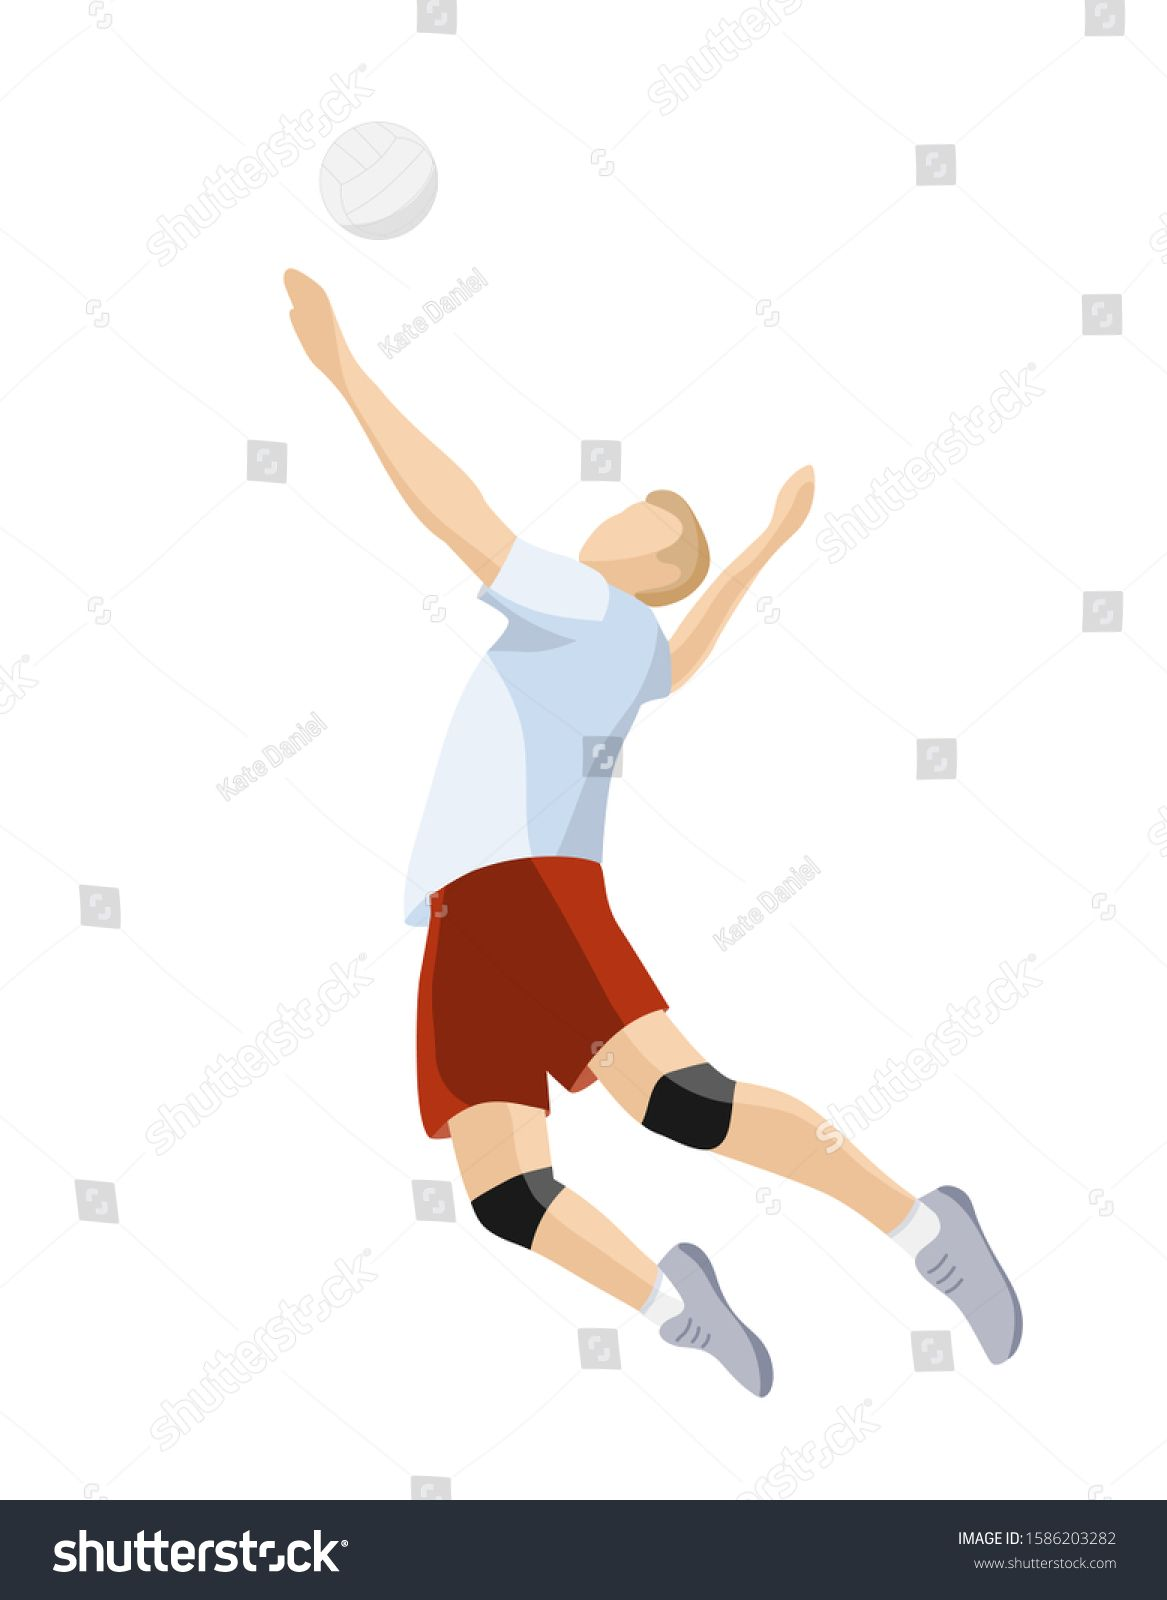 Volleyball Player Hits Ball Isolated On Royalty Free Image Vector In 2020 Volleyball Players Players Volleyball